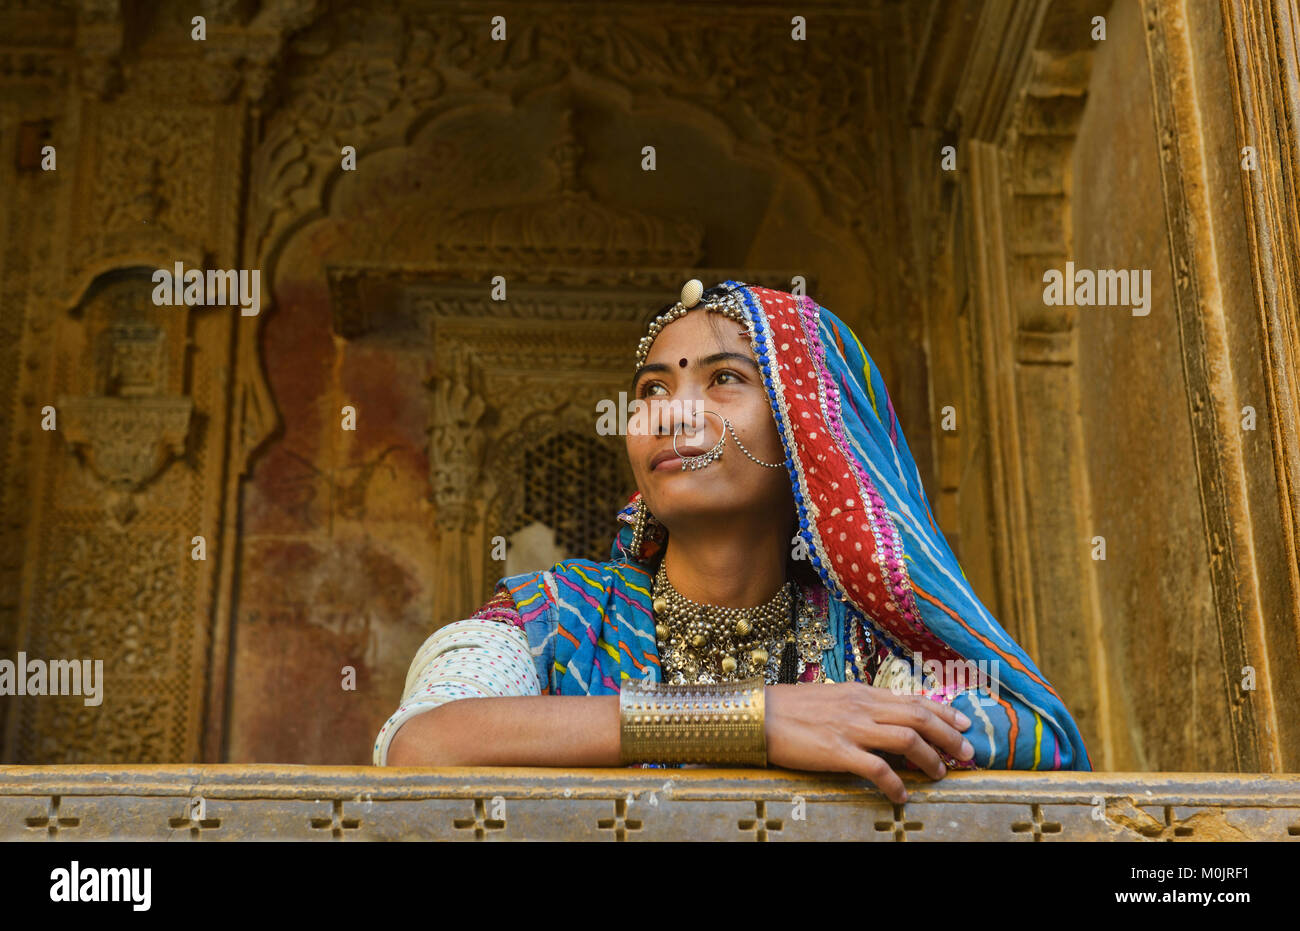 Rajasthani Lac Jewellery Rajasthan Jewellery Stock Photos And Rajasthan Jewellery